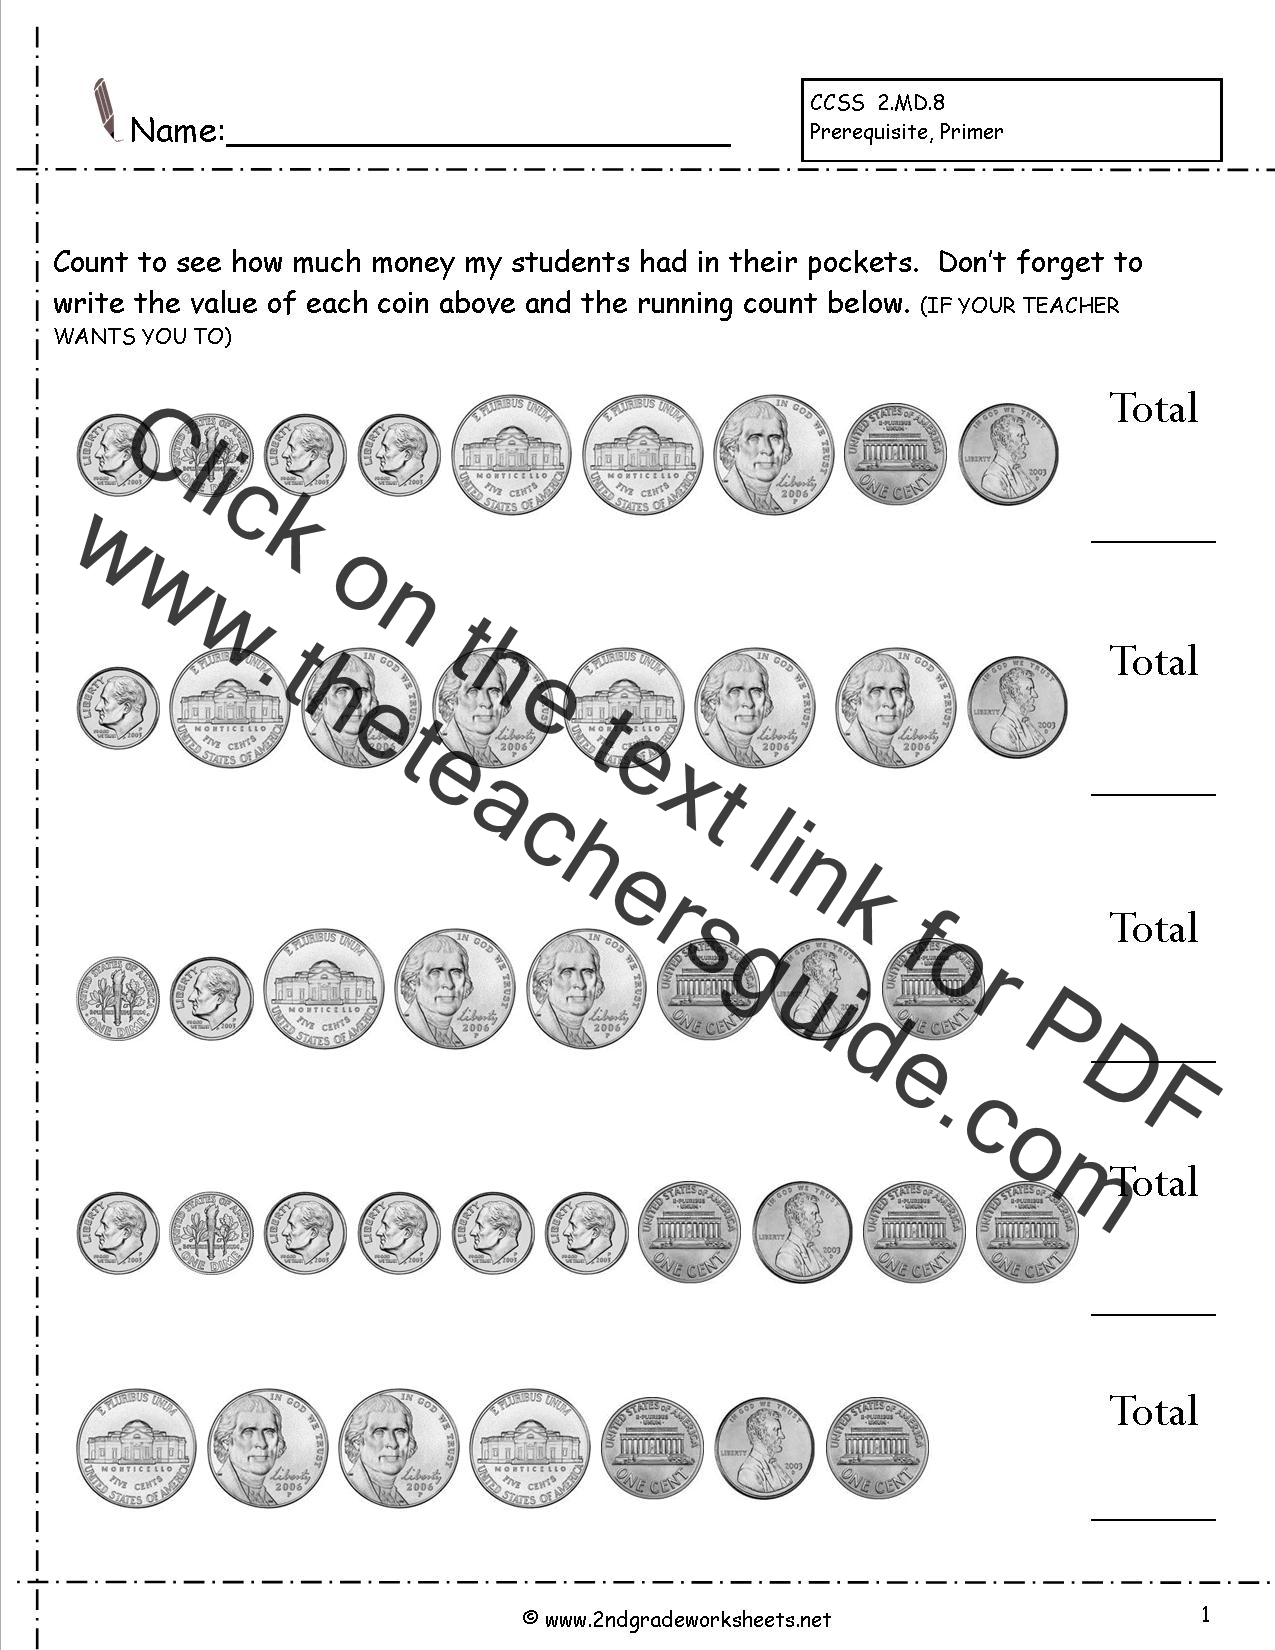 Counting Coins and Money Worksheets and Printouts – Counting Money Printable Worksheets